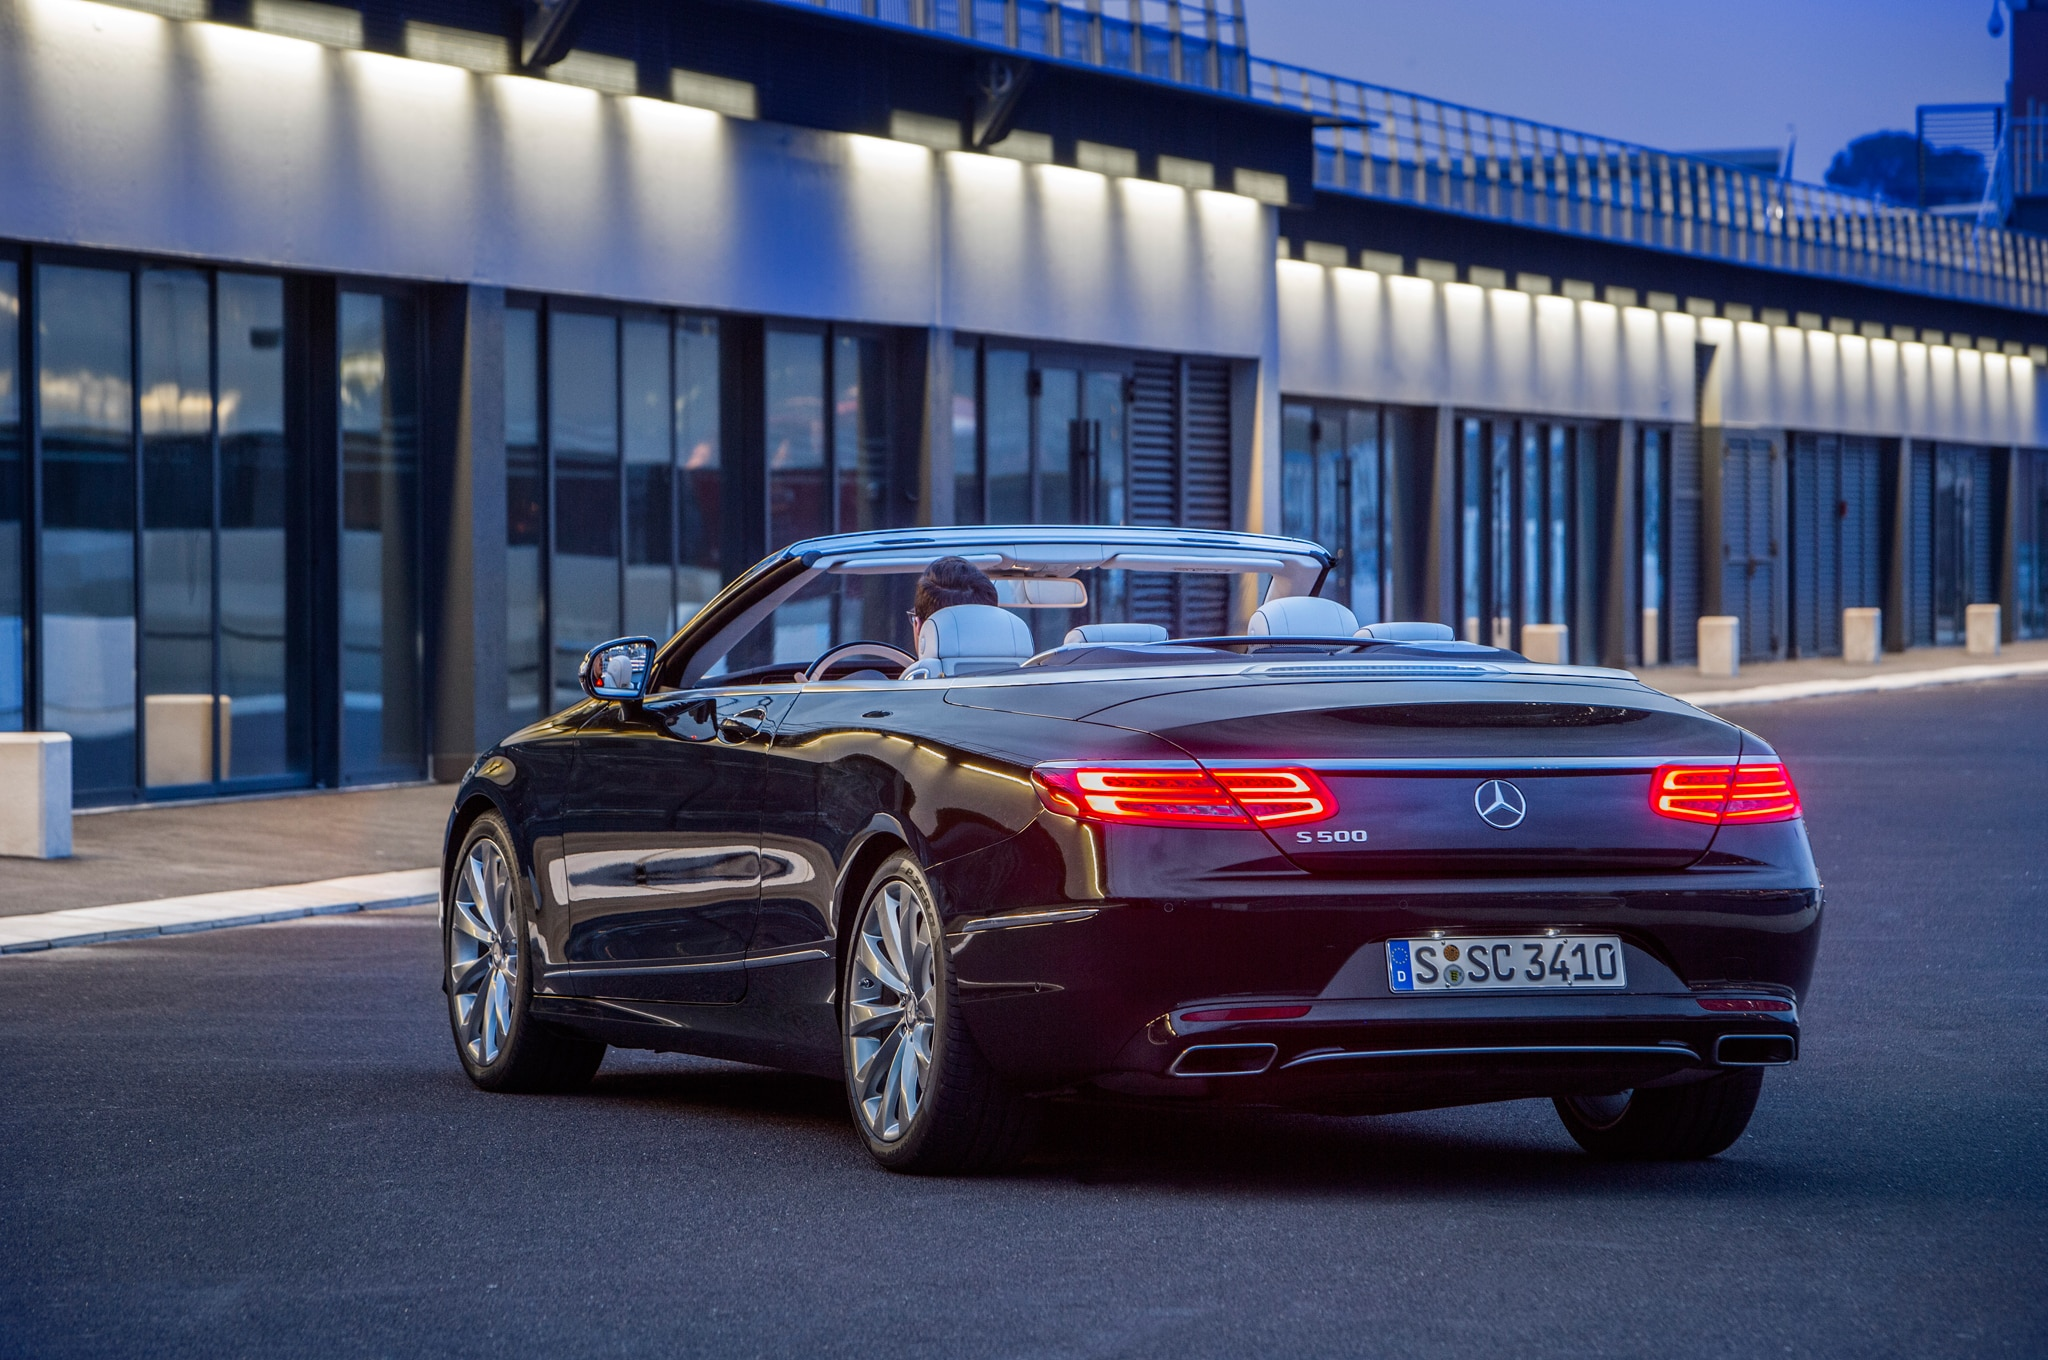 2017 mercedes benz s500 cabriolet review for S 500 mercedes benz